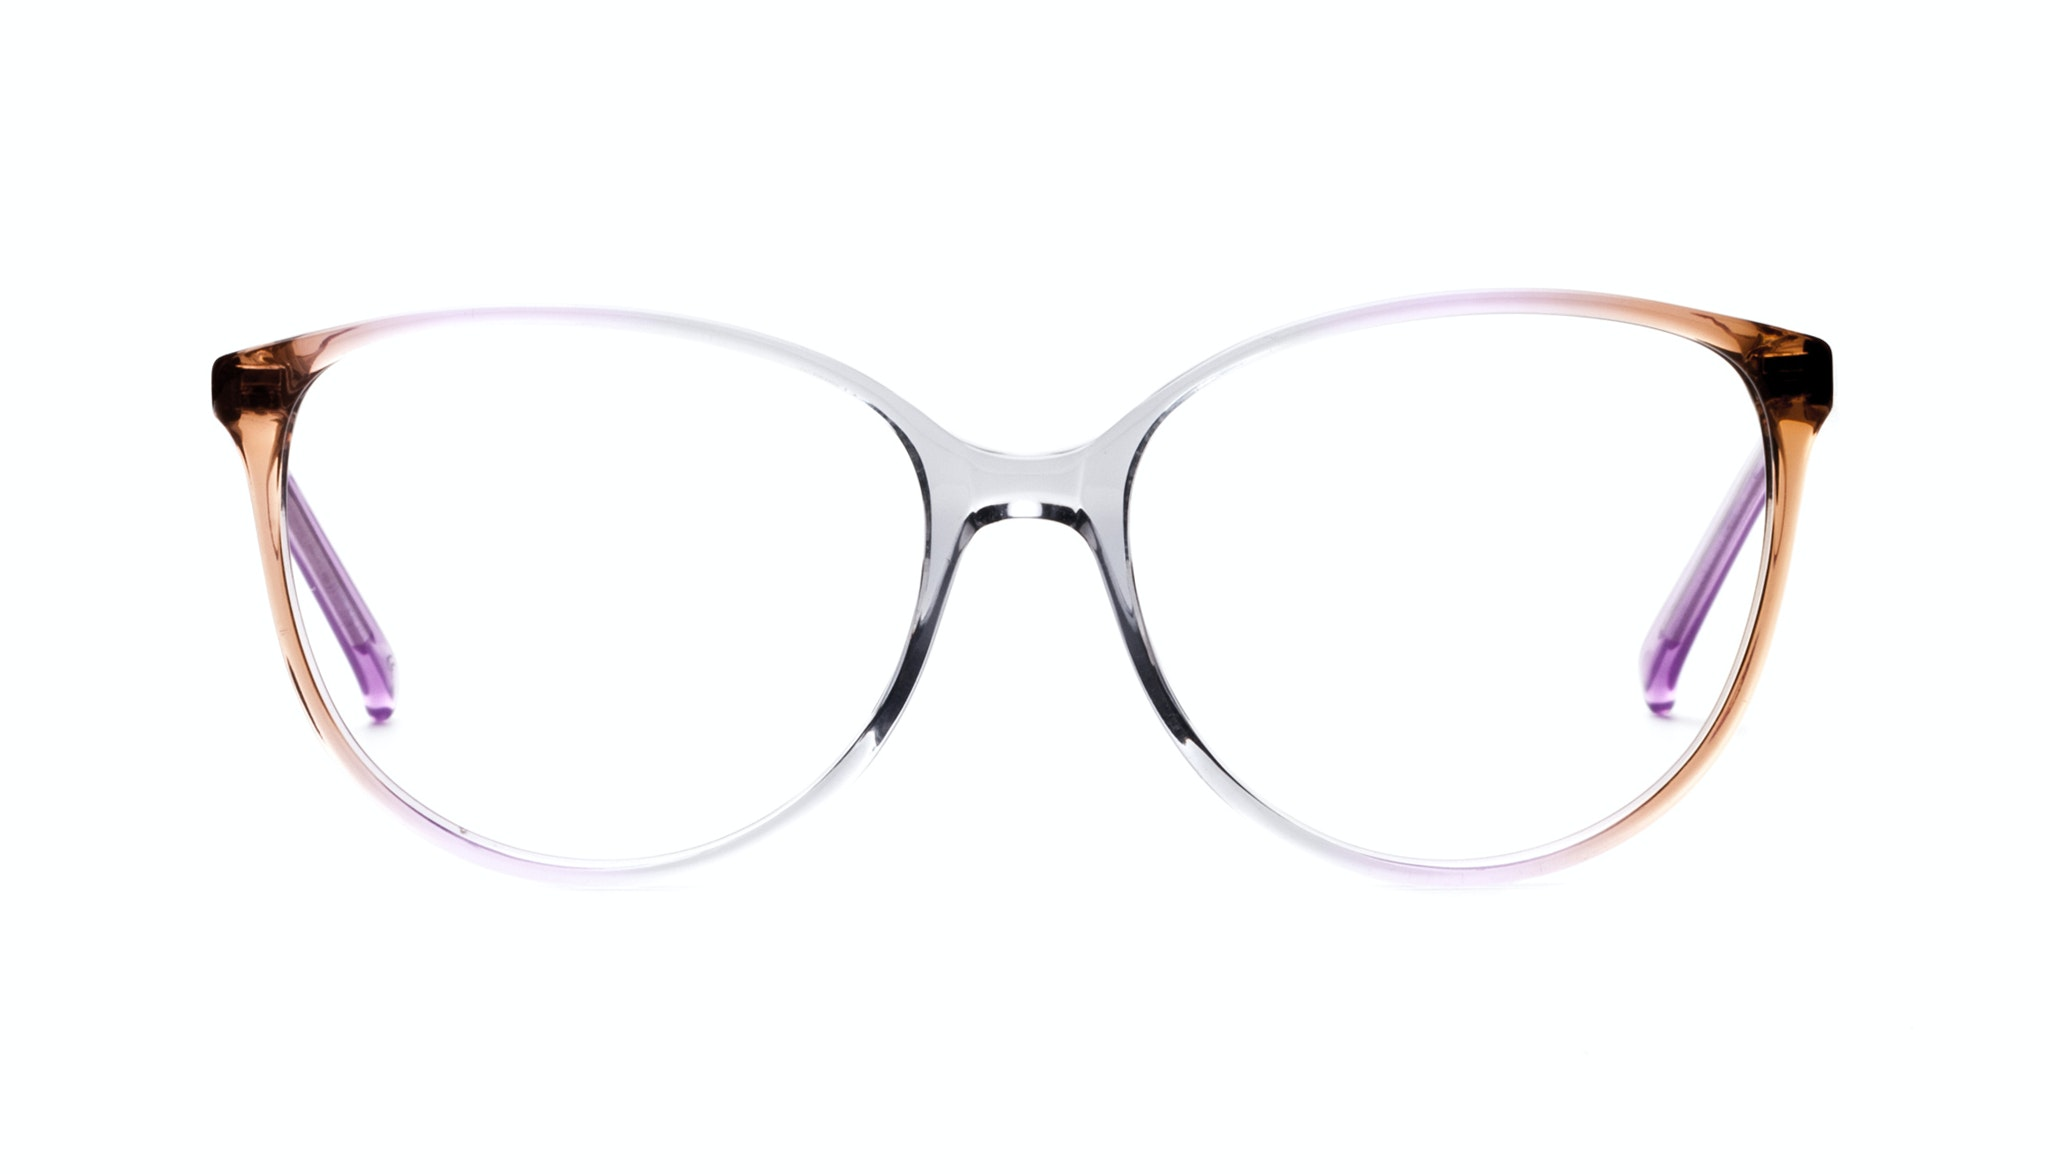 Affordable Fashion Glasses Cat Eye Round Eyeglasses Women Imagine Rainbow Haze